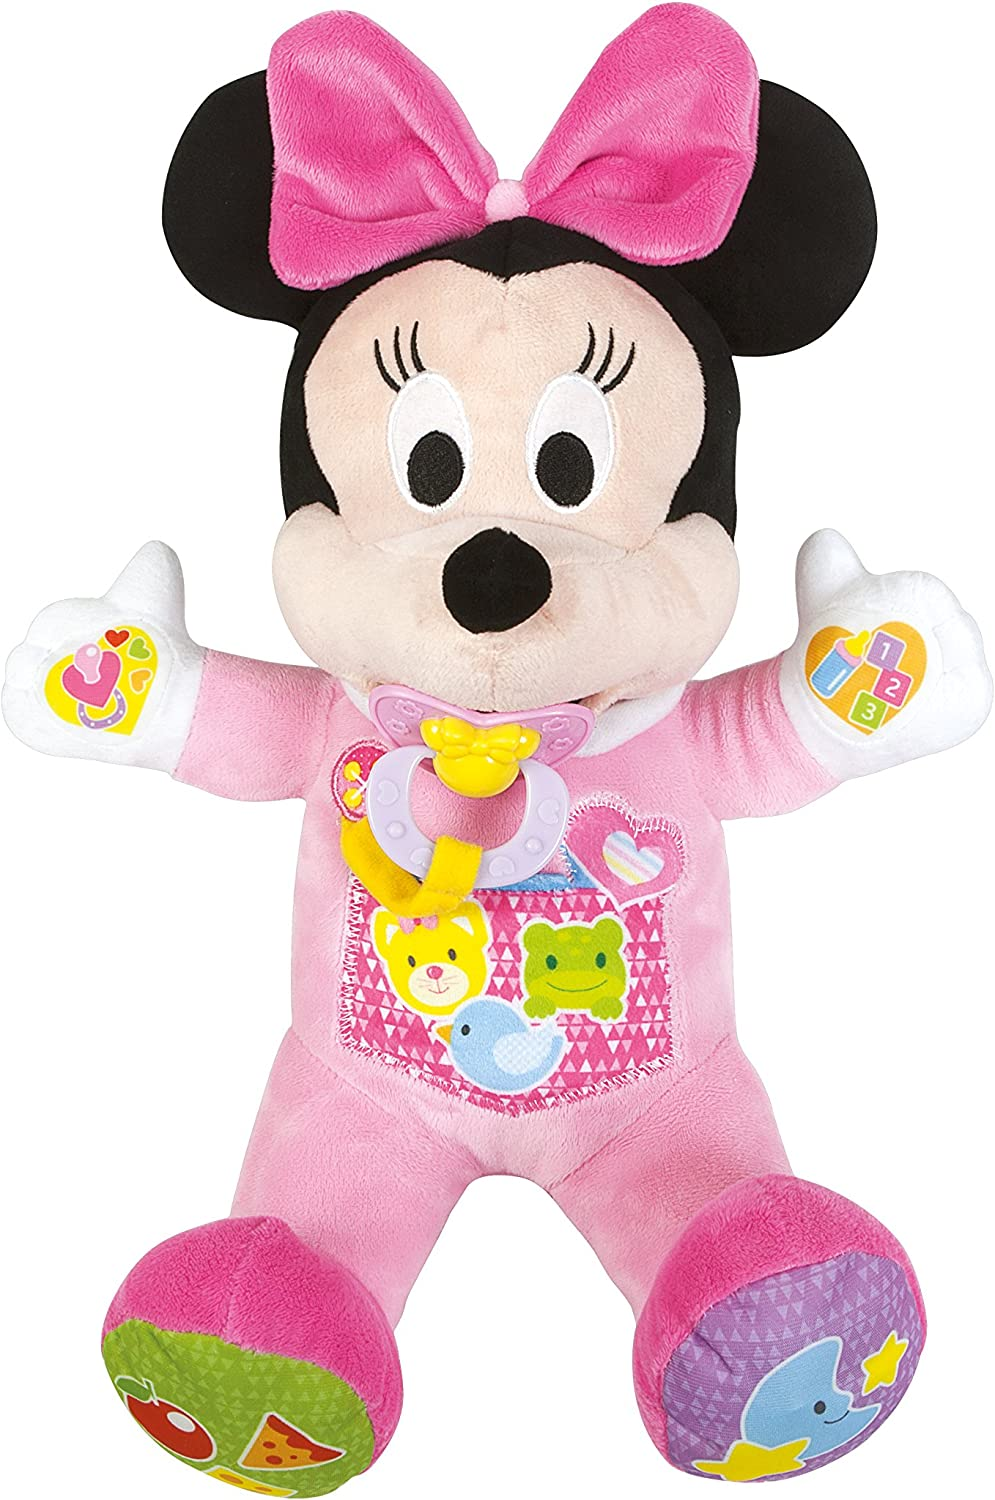 Peluche parlante Disney Minnie en promotion